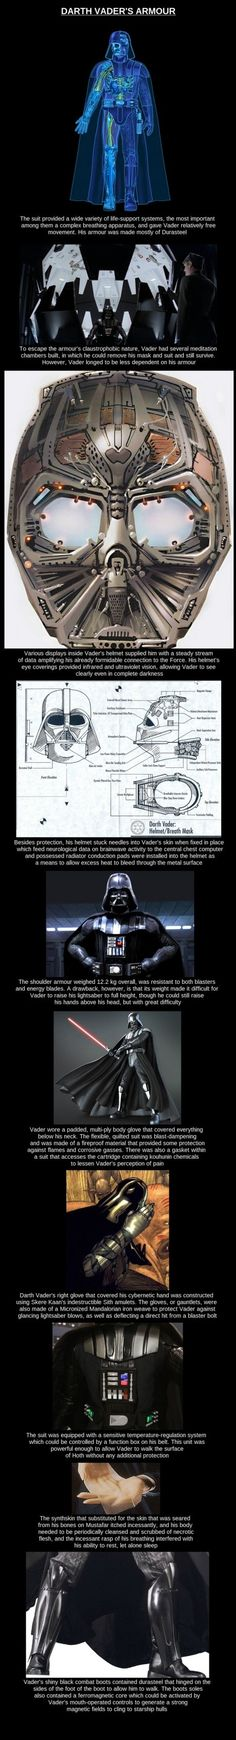 The truth about Darth Vader's Armour